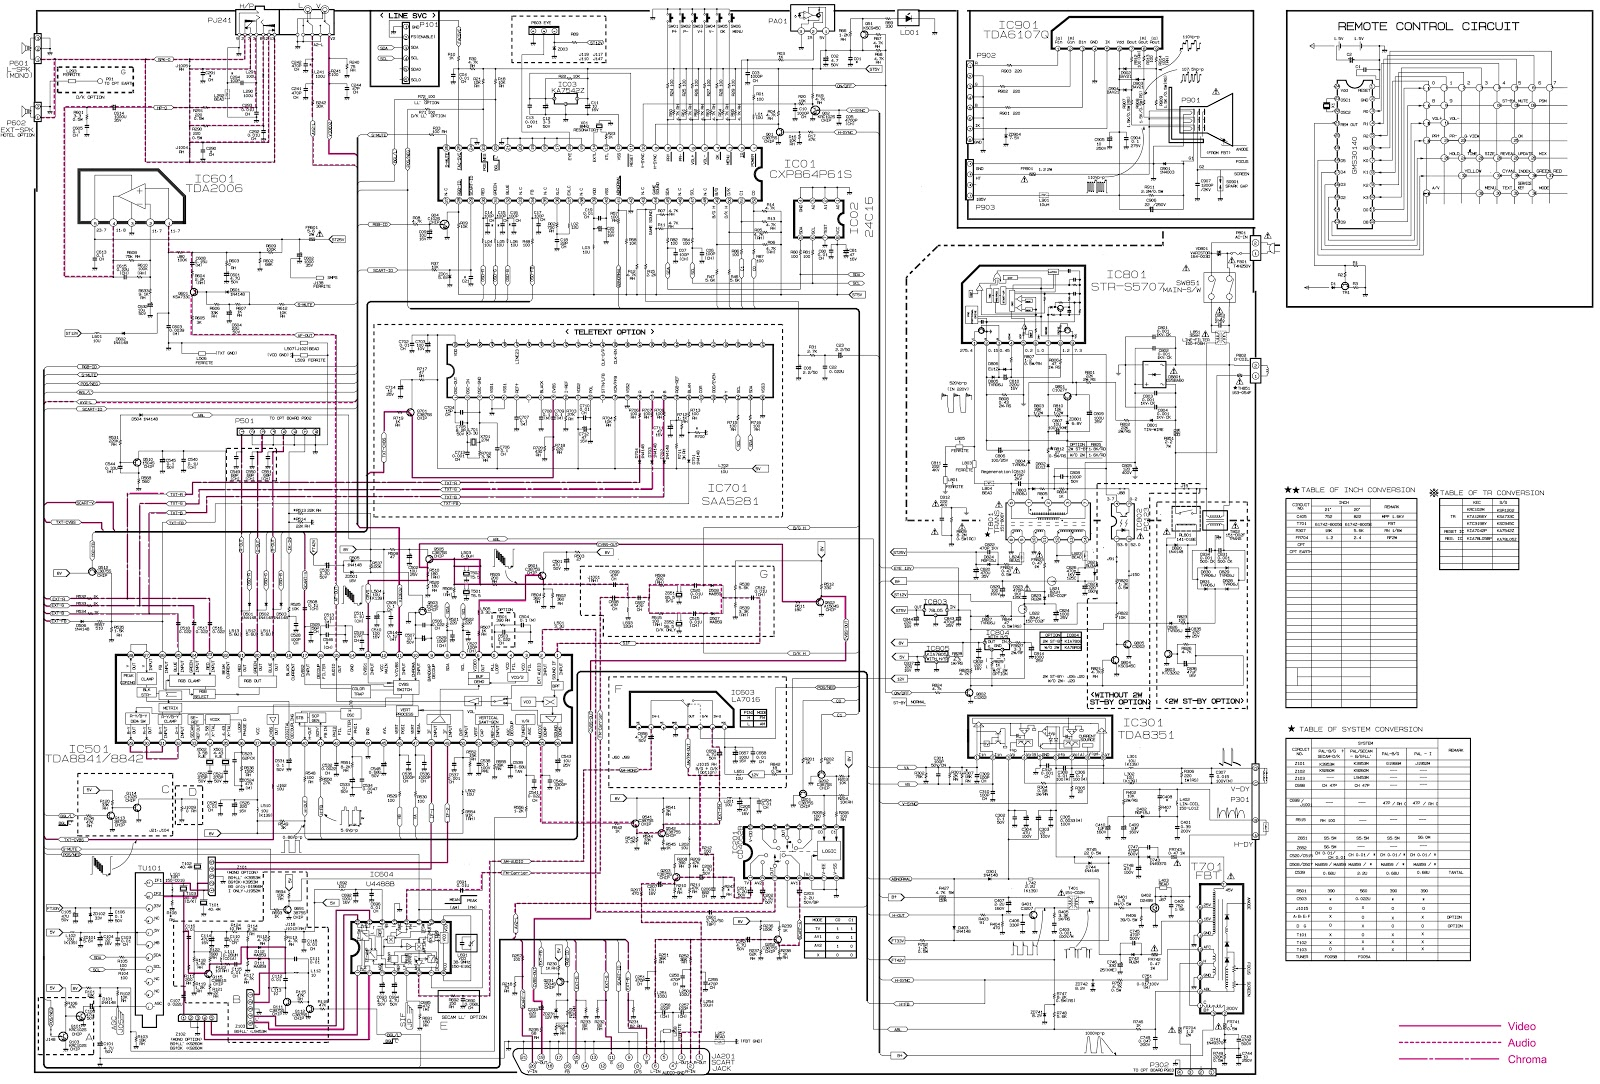 Toshiba Crt Tv Schematic Diagram Get Free Image About